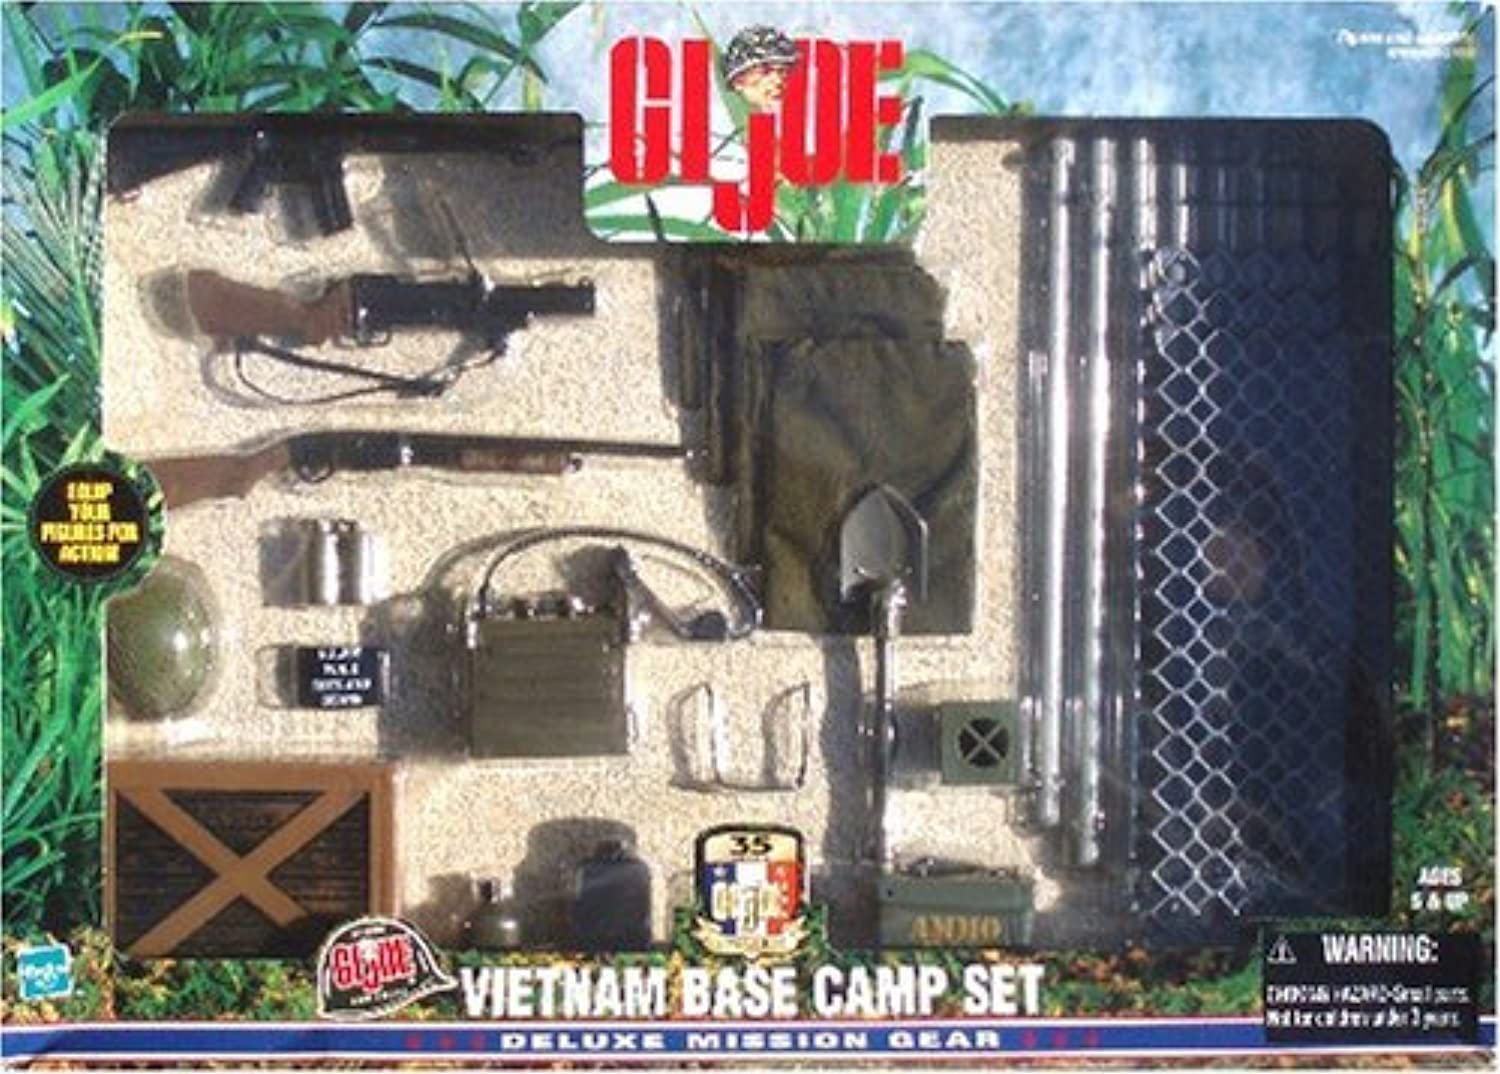 GI Joe Vietnam Base Camp Set Deluxe Mission Gear